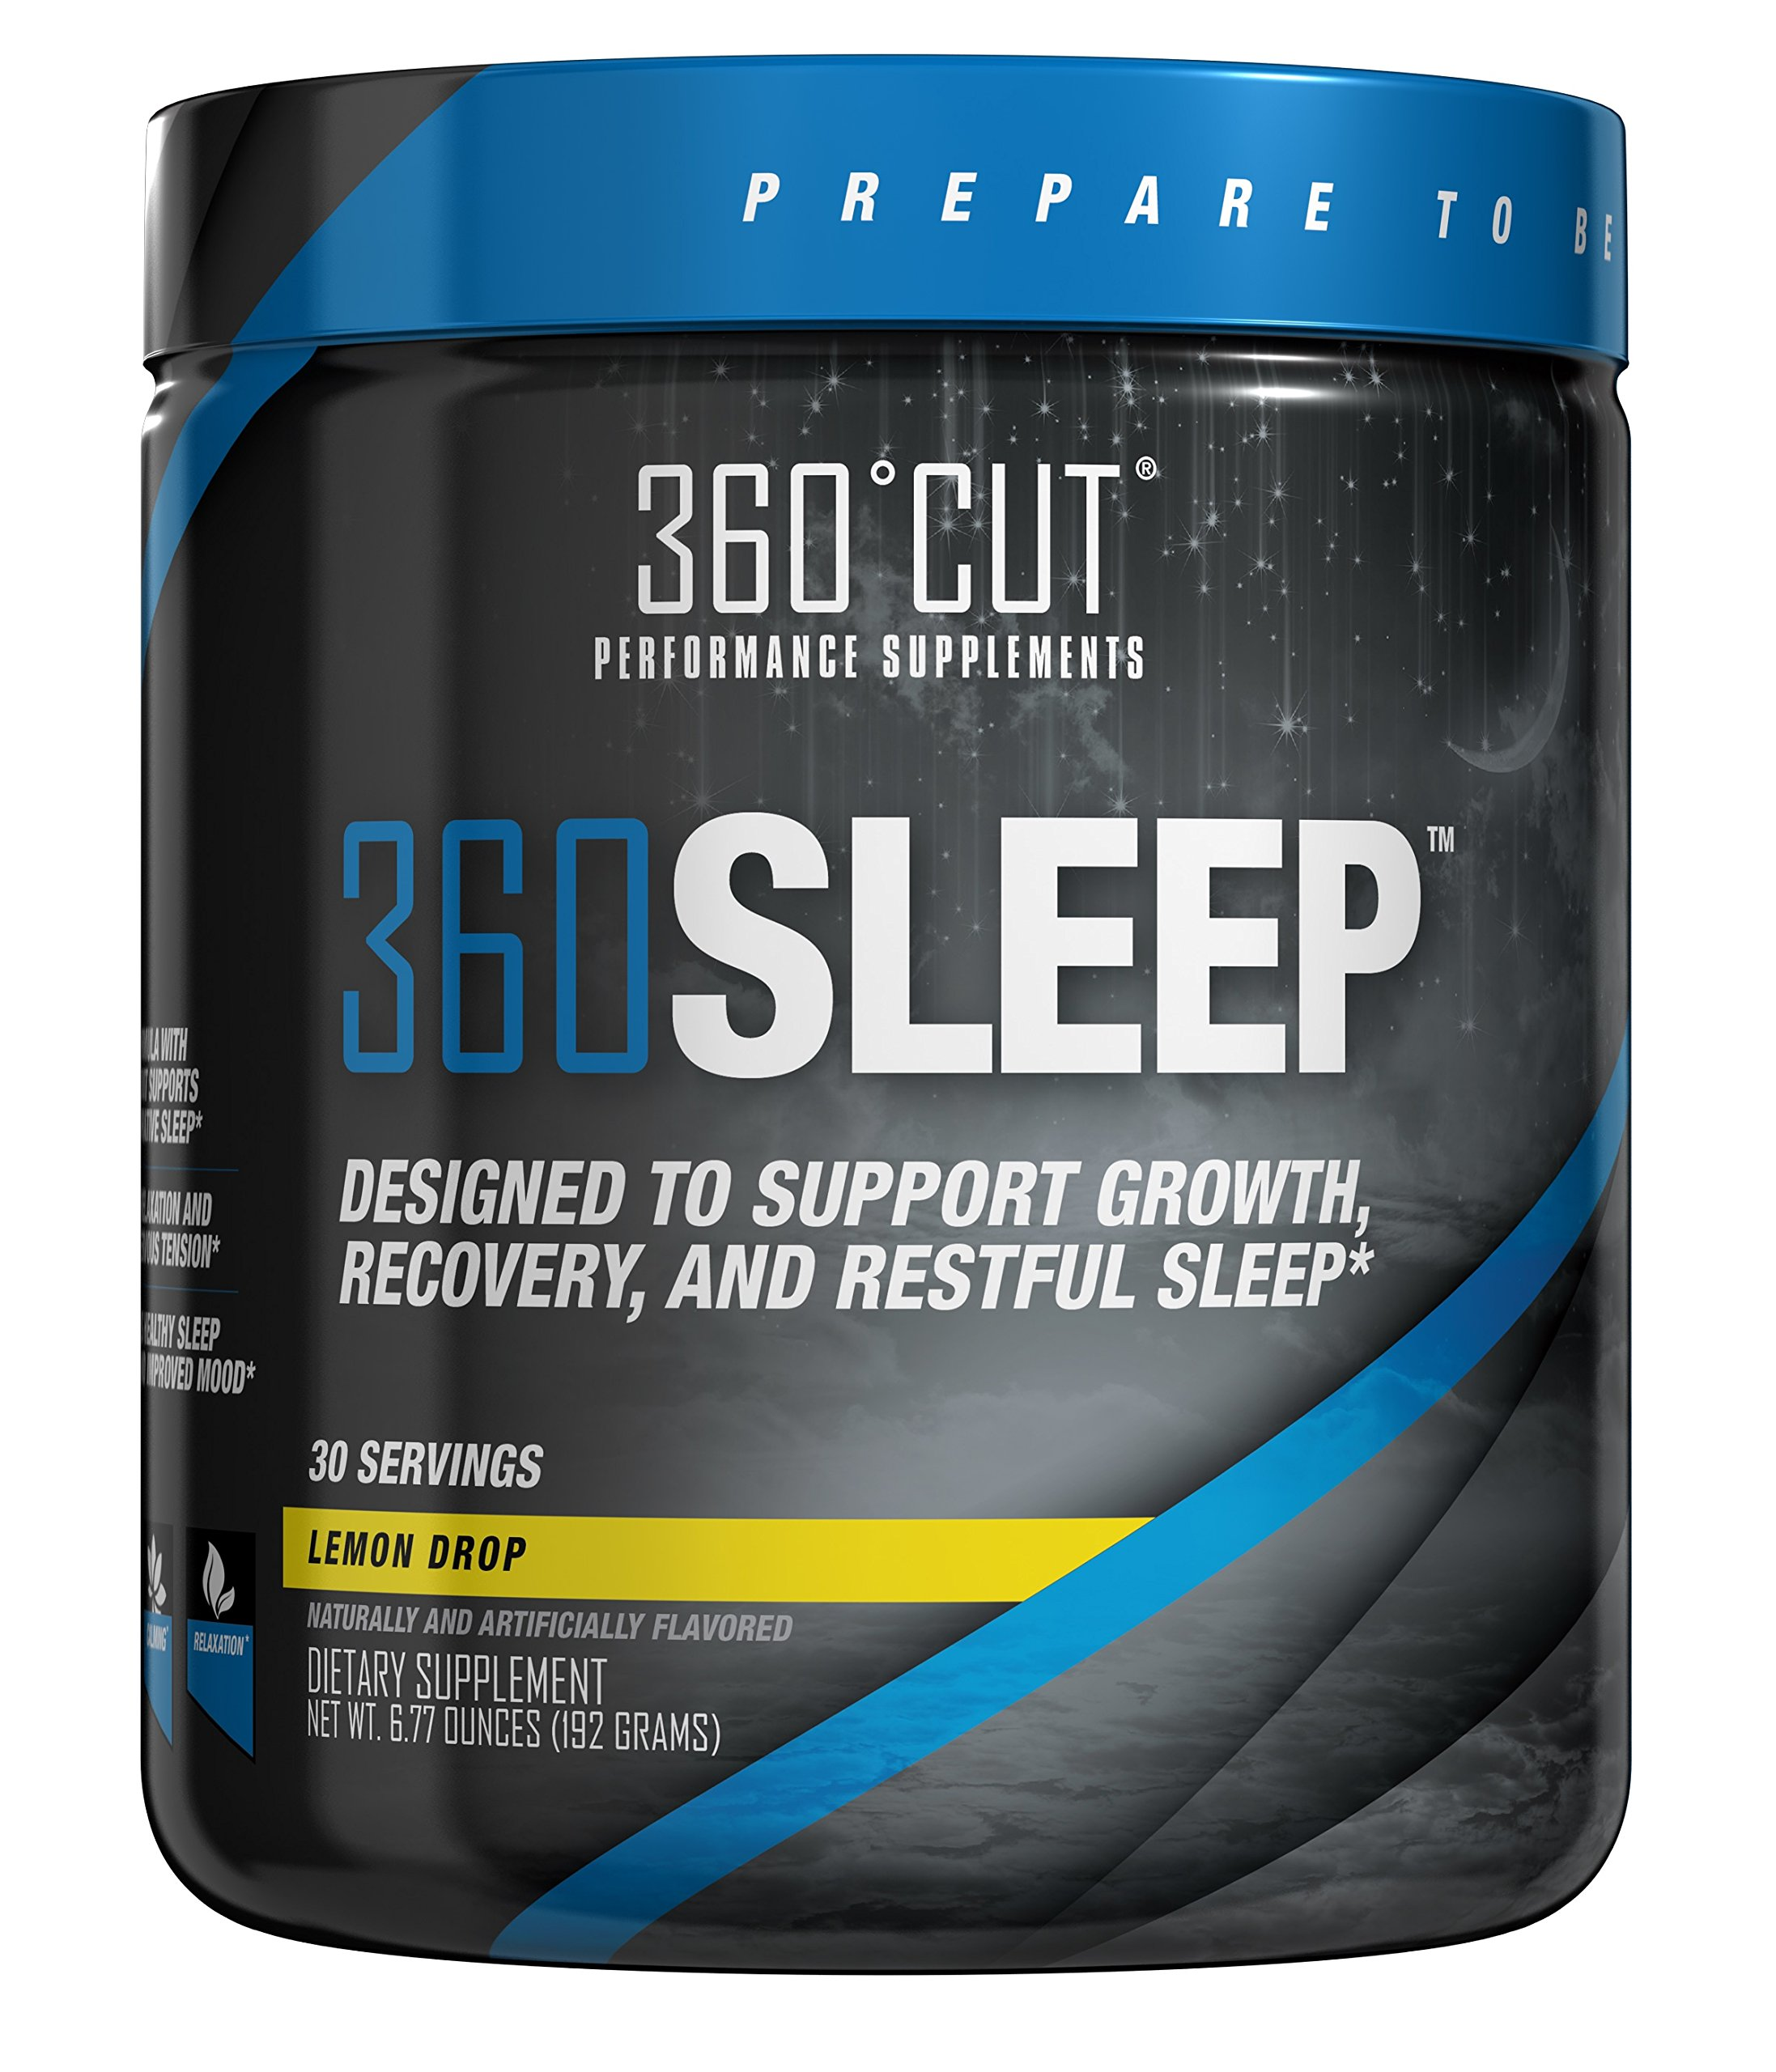 360SLEEP Valerian Root Sleep Aid for Restful, Restorative, Natural Sleep w/Valerian Root